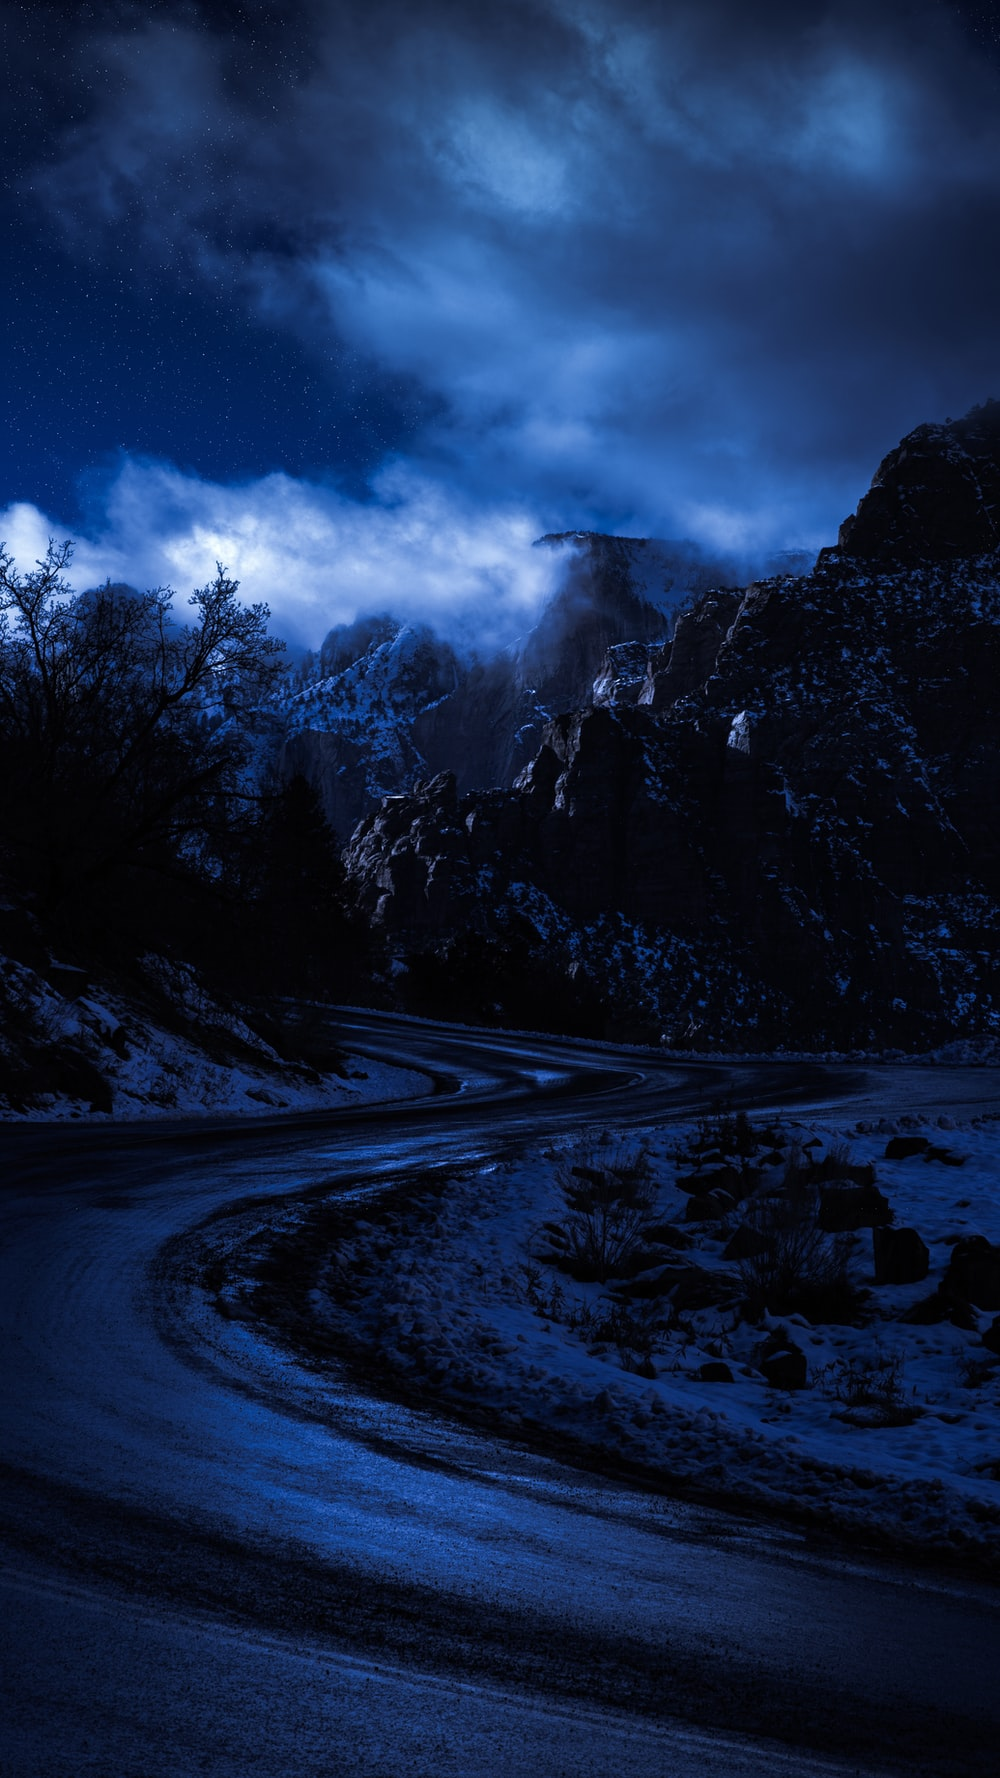 snow covered road near trees and mountain under cloudy sky during daytime